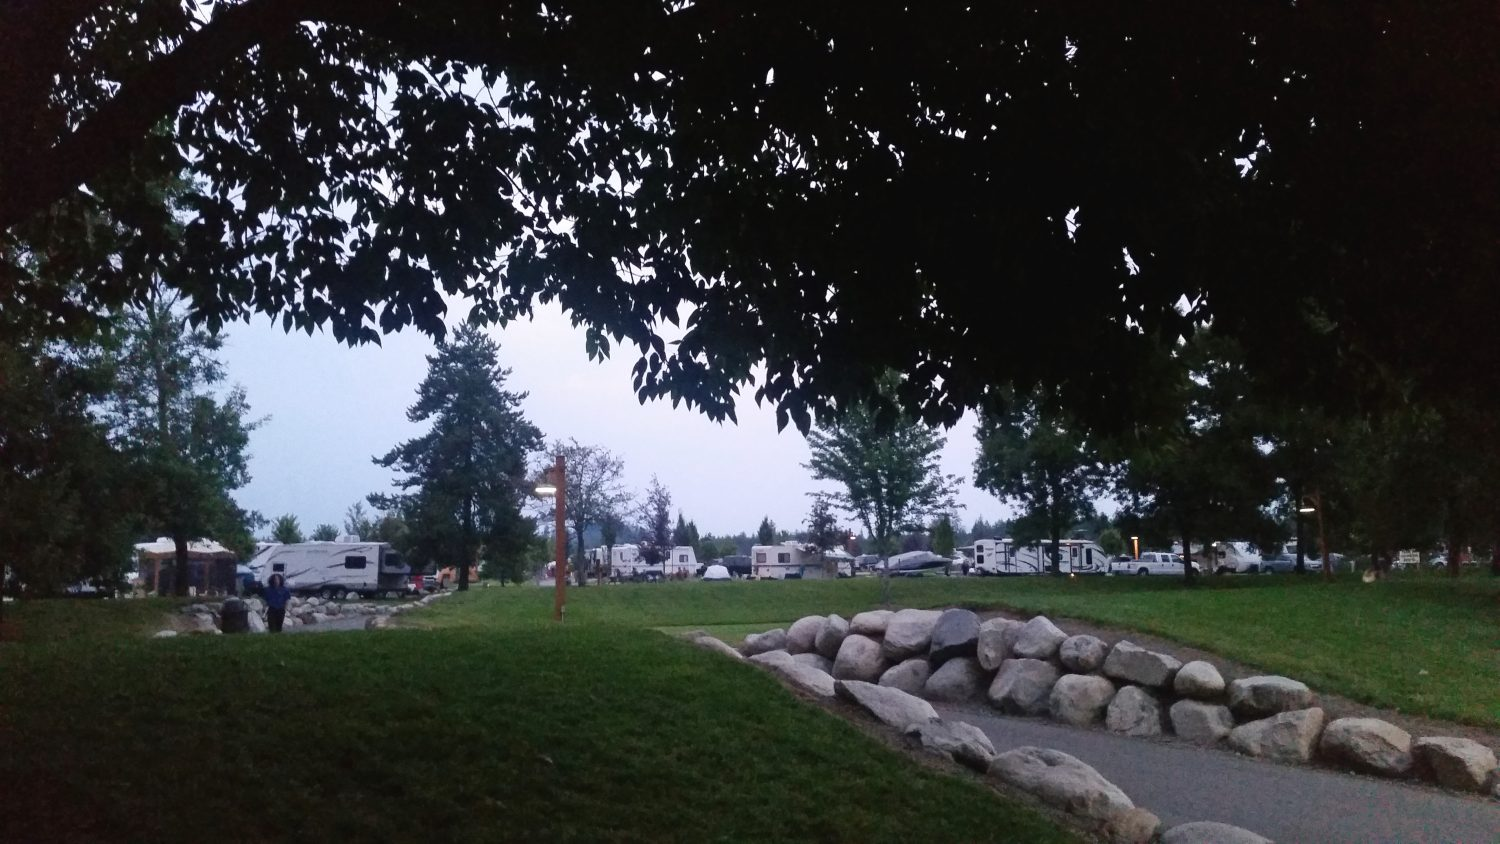 After a day on the waterslides and roller coasters, head back to Silverwood's RV park and make s'mores by the campfire. Photo by author (Nikki Cleveland)